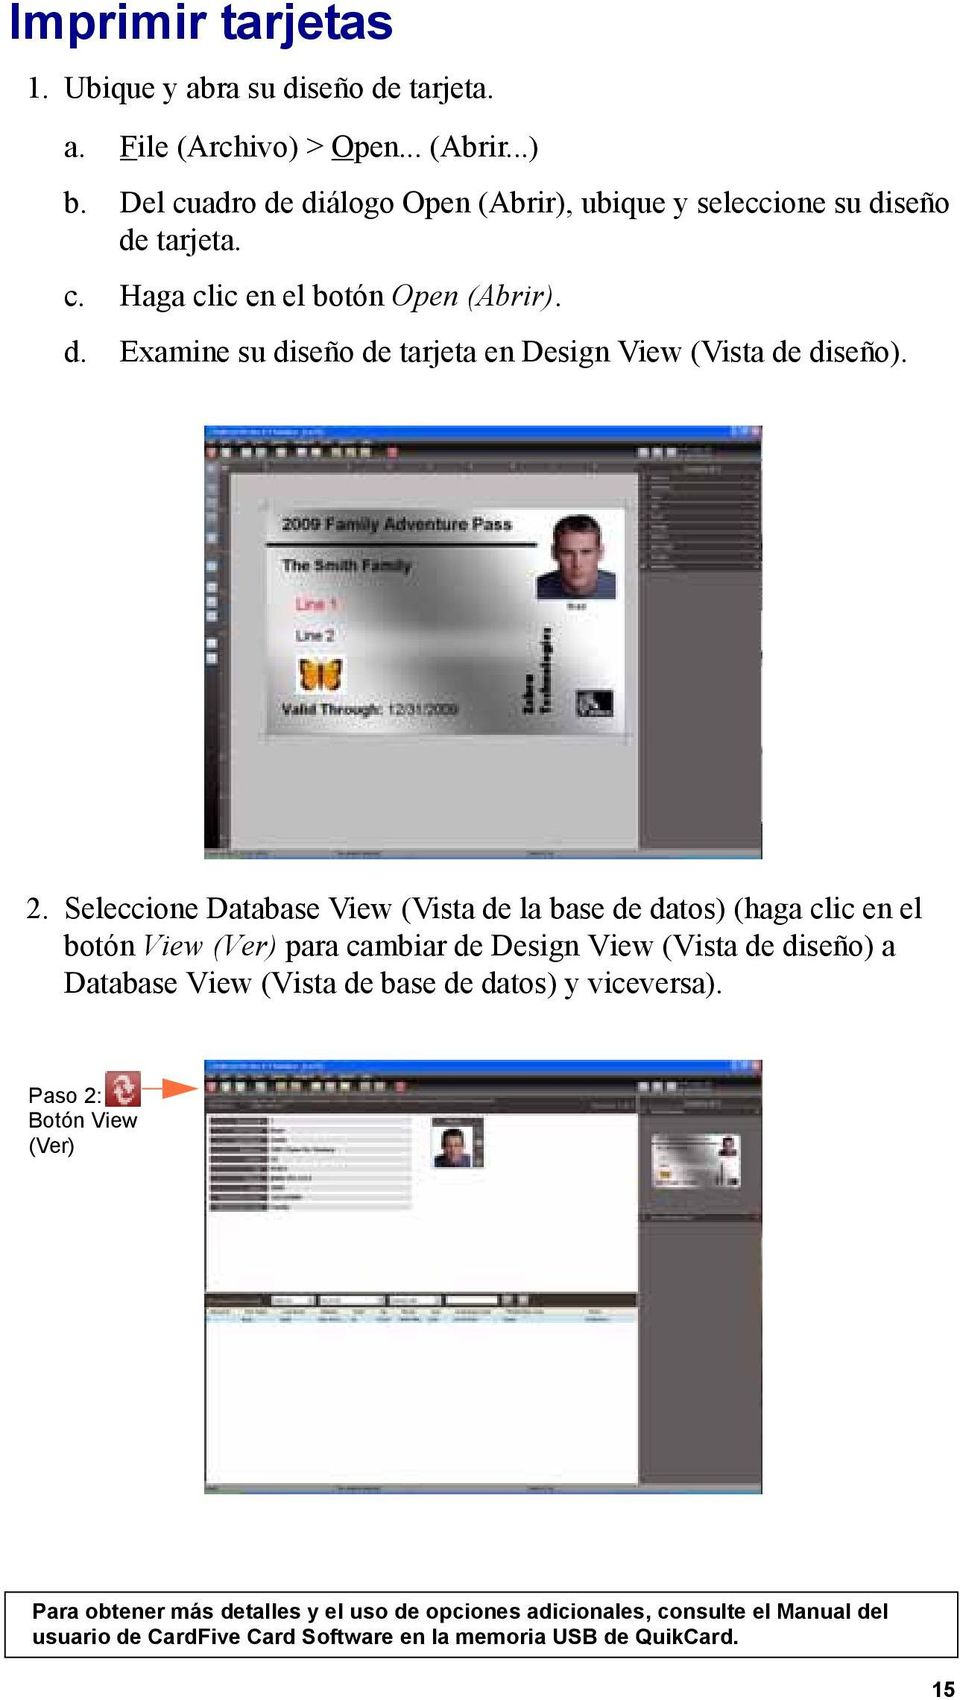 2. Seleccione Database View (Vista de la base de datos) (haga clic en el botón View (Ver) para cambiar de Design View (Vista